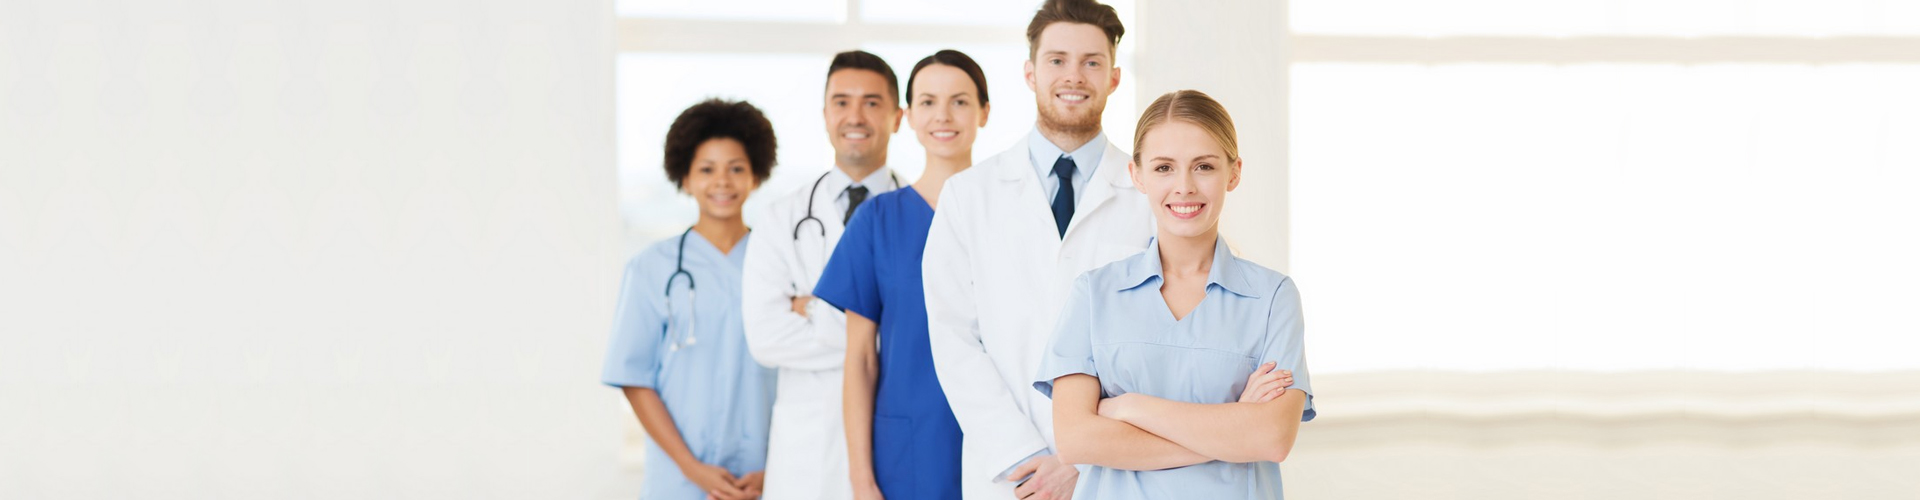 a group of medical staff smiling